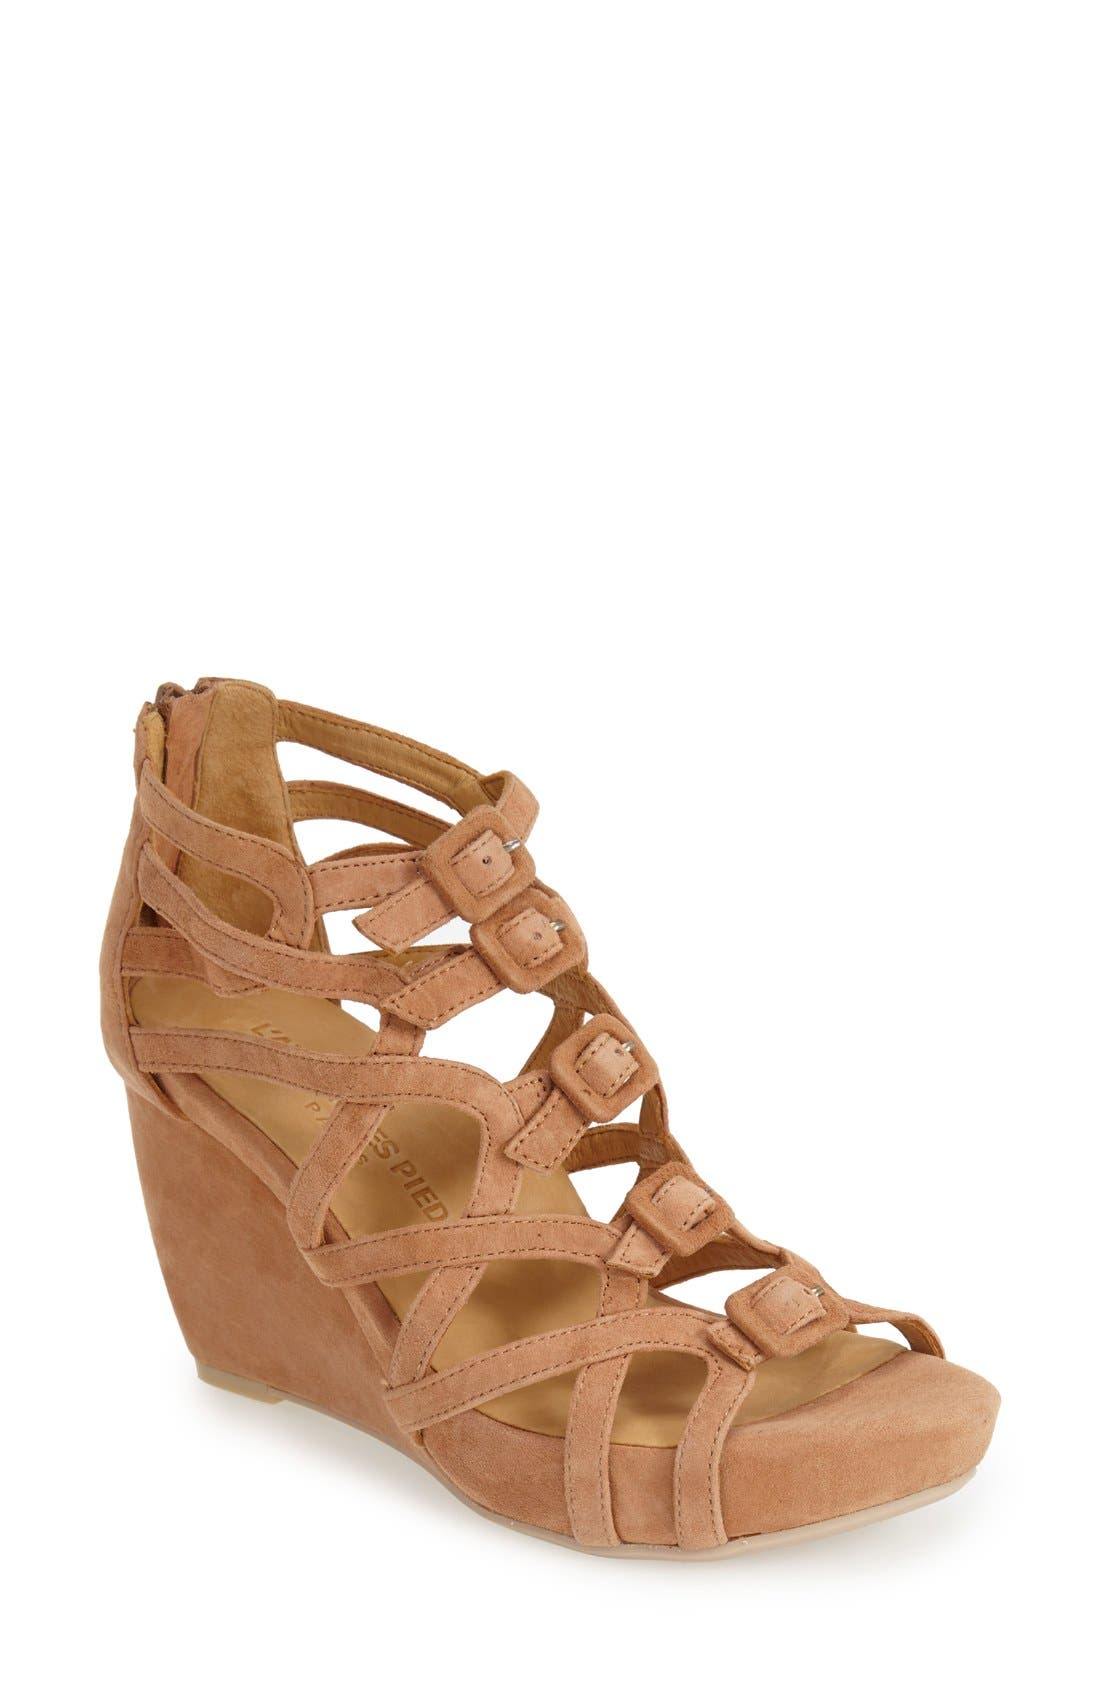 Ivanna' Gladiator Wedge Sandal,                             Main thumbnail 5, color,